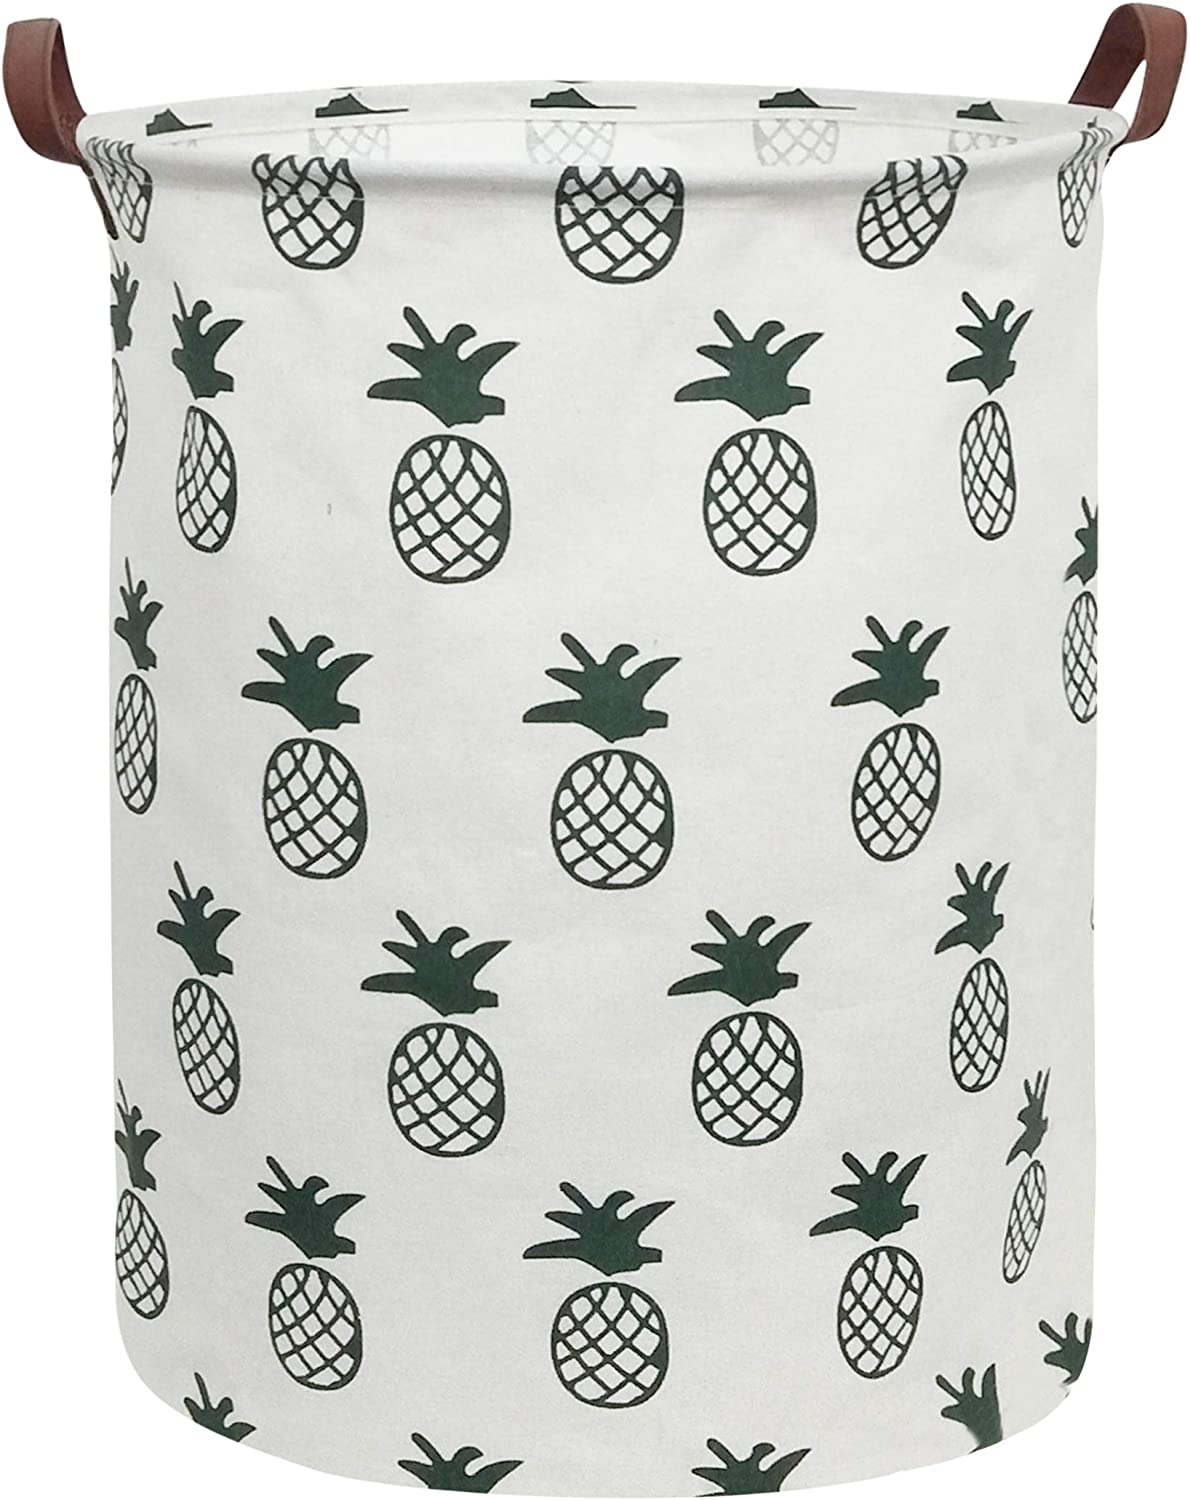 CLOCOR Collapsible Round Storage Bin/Large Storage Basket/Clothes Laundry Hamper/Toy Books Holder (Pineapple)